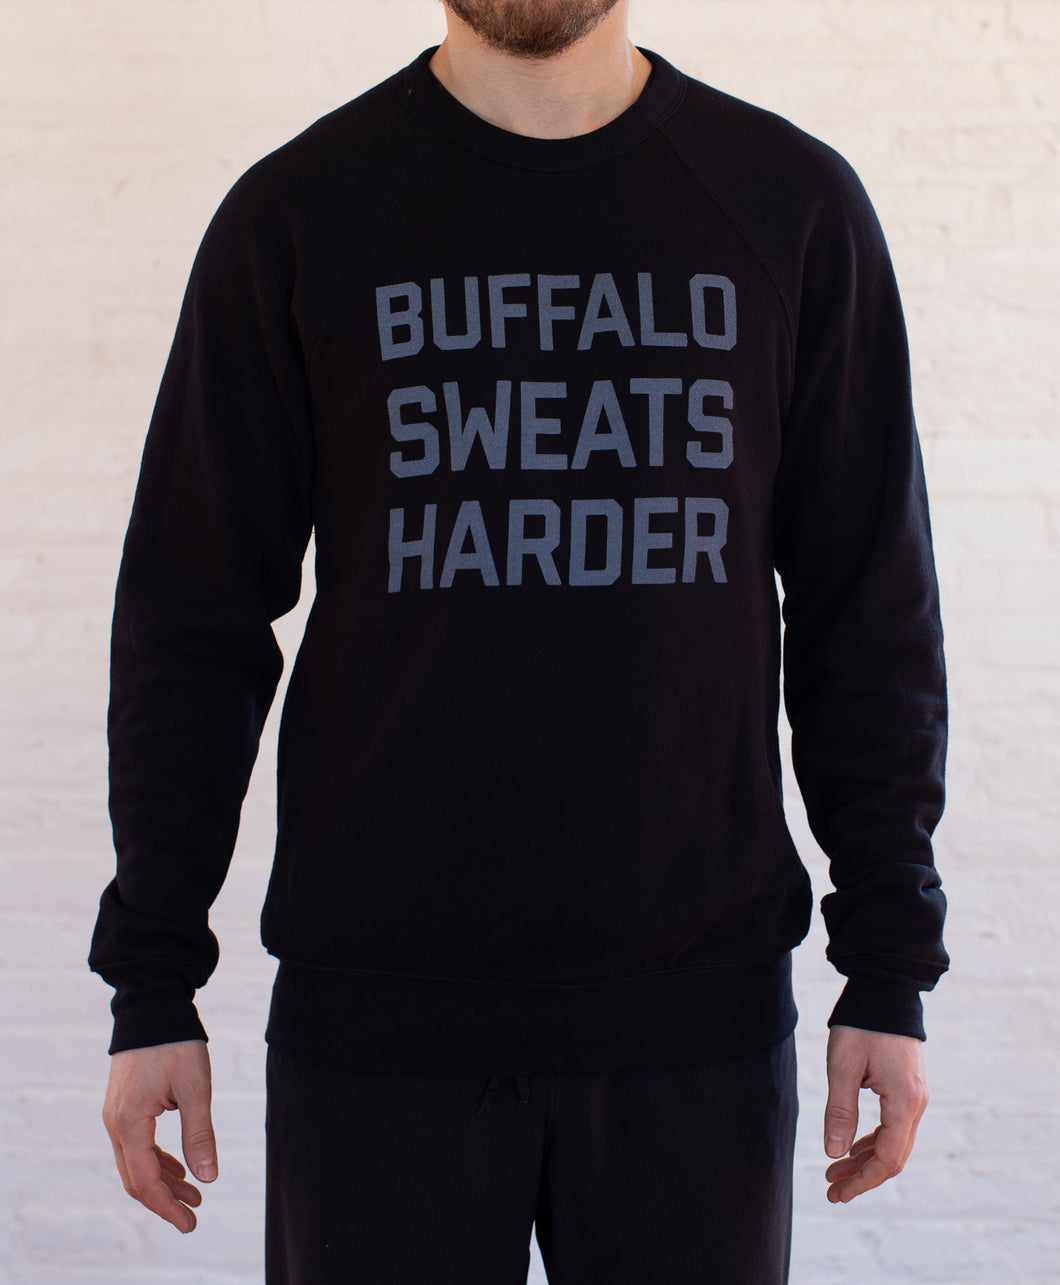 Buffalo Sweats Harder™ Crew Neck - Black